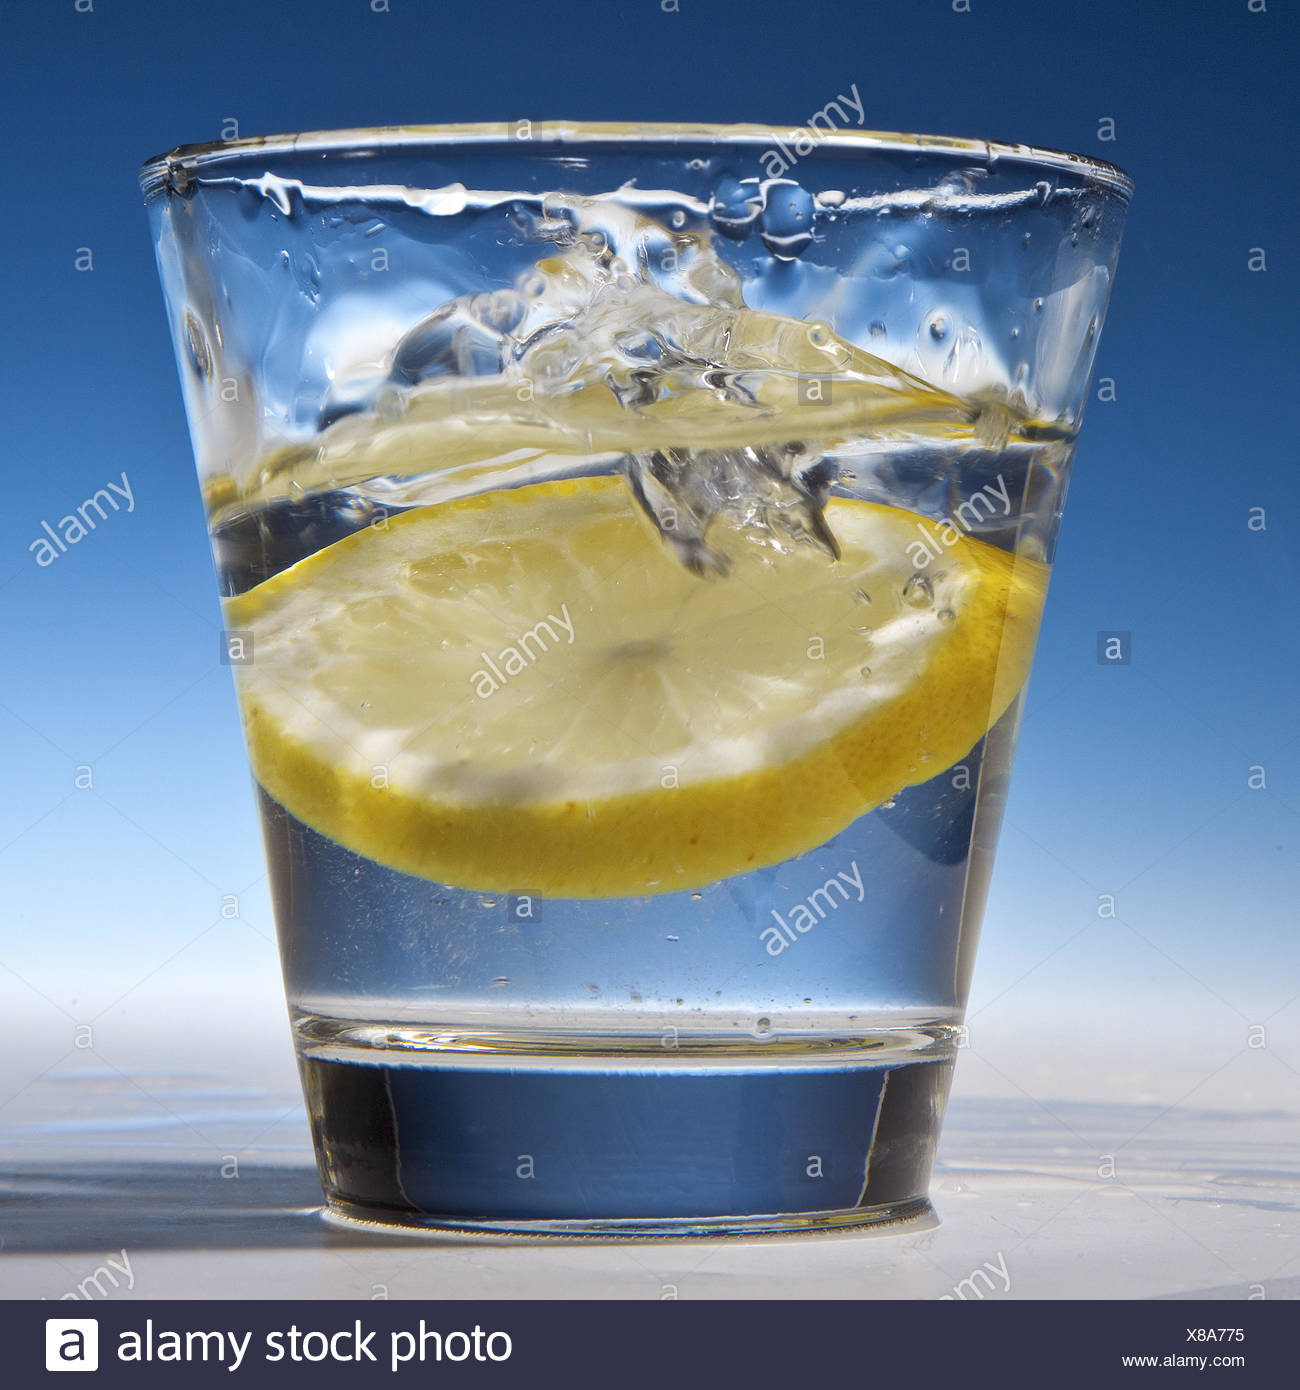 Slice of lemon falling into a glass with water - Stock Image